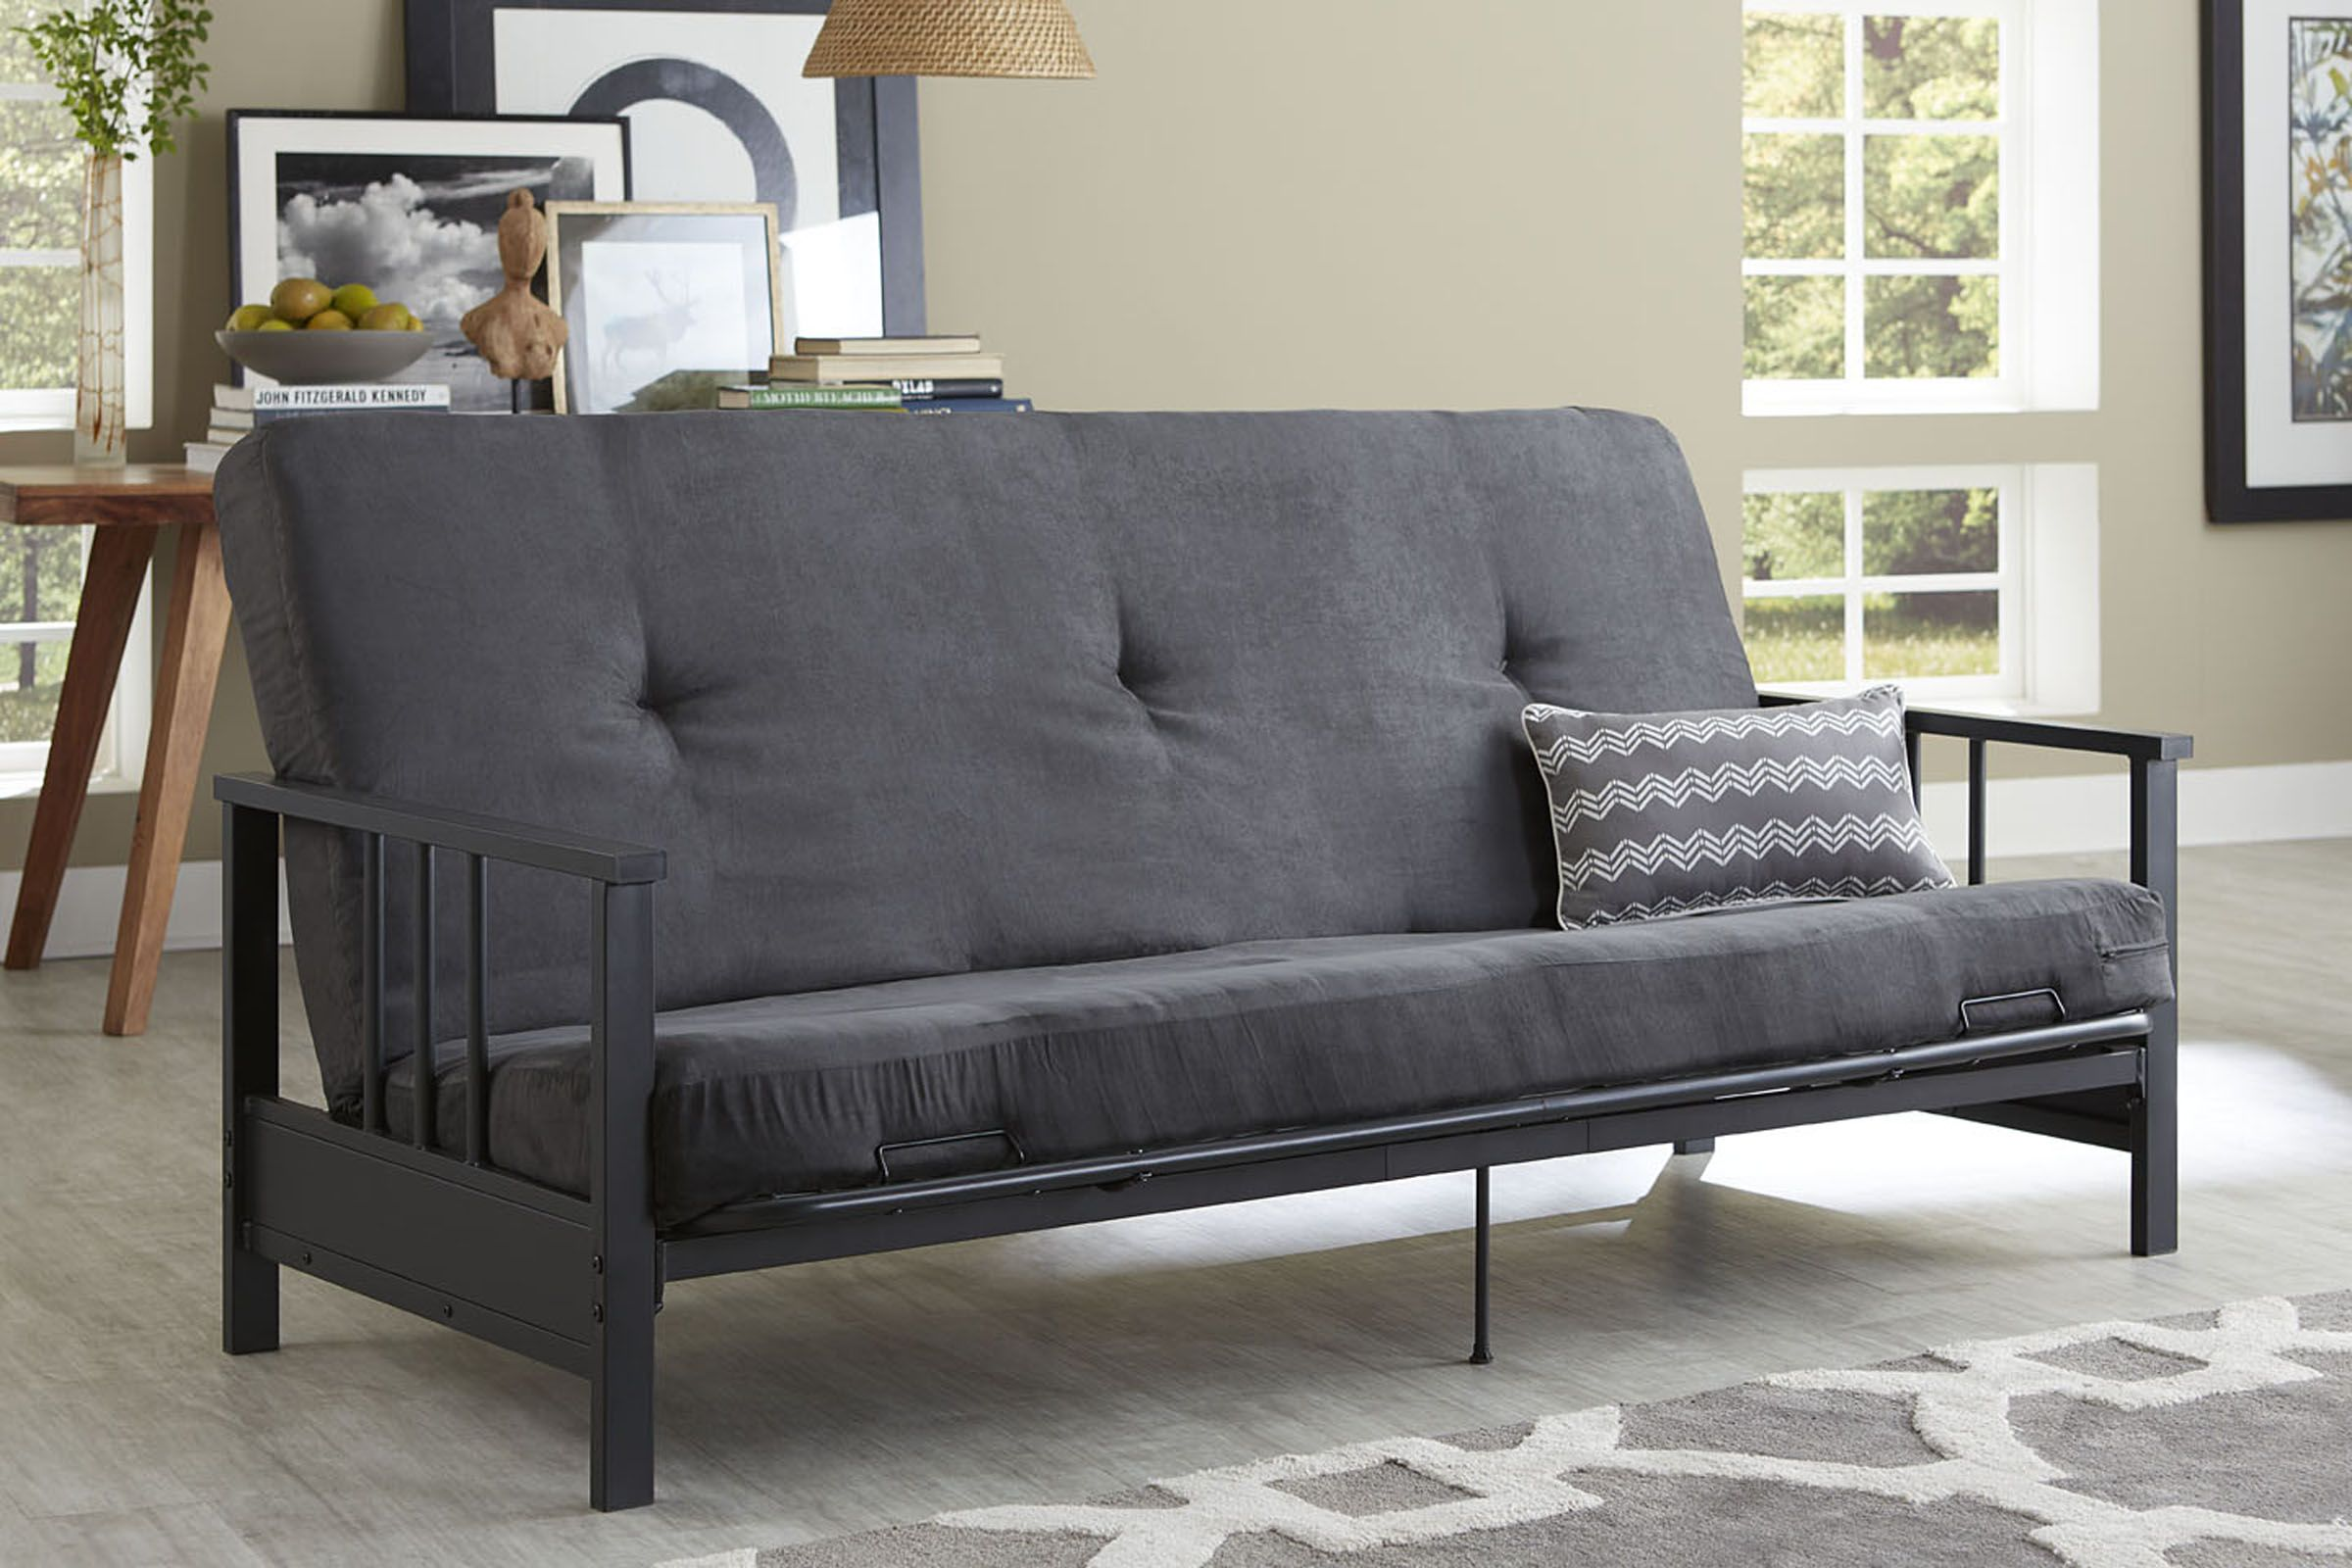 Couch Under 100 In 2020 Sofa Bed